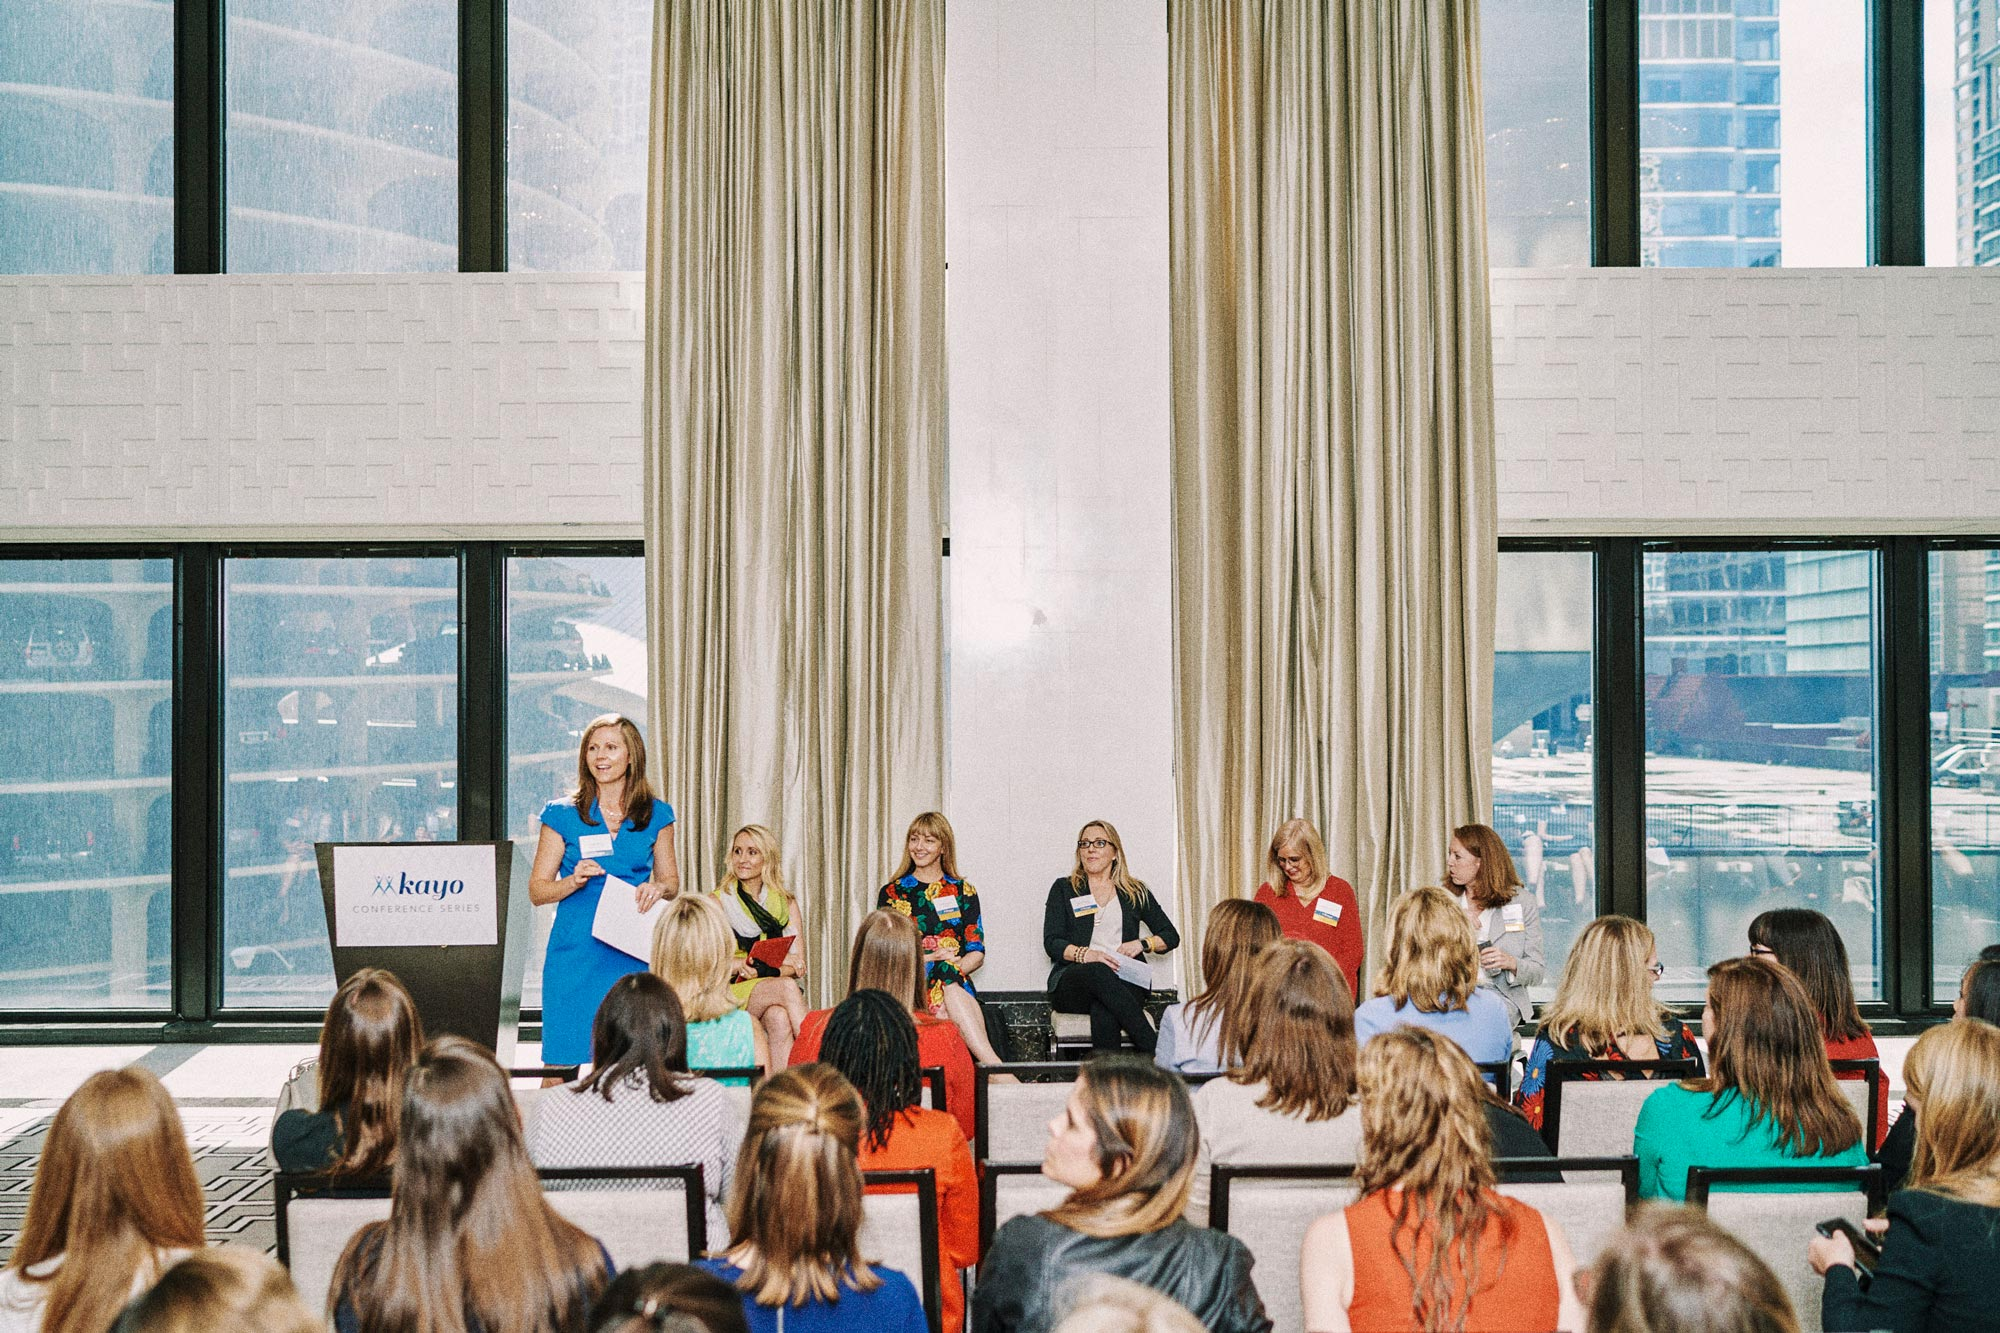 In 2013, Lindsay Burton started Kayo Conference Series, which is aimed toward women who want to advance their careers, connect with leaders and champion their peers. (Photo by Jack Soltysik)